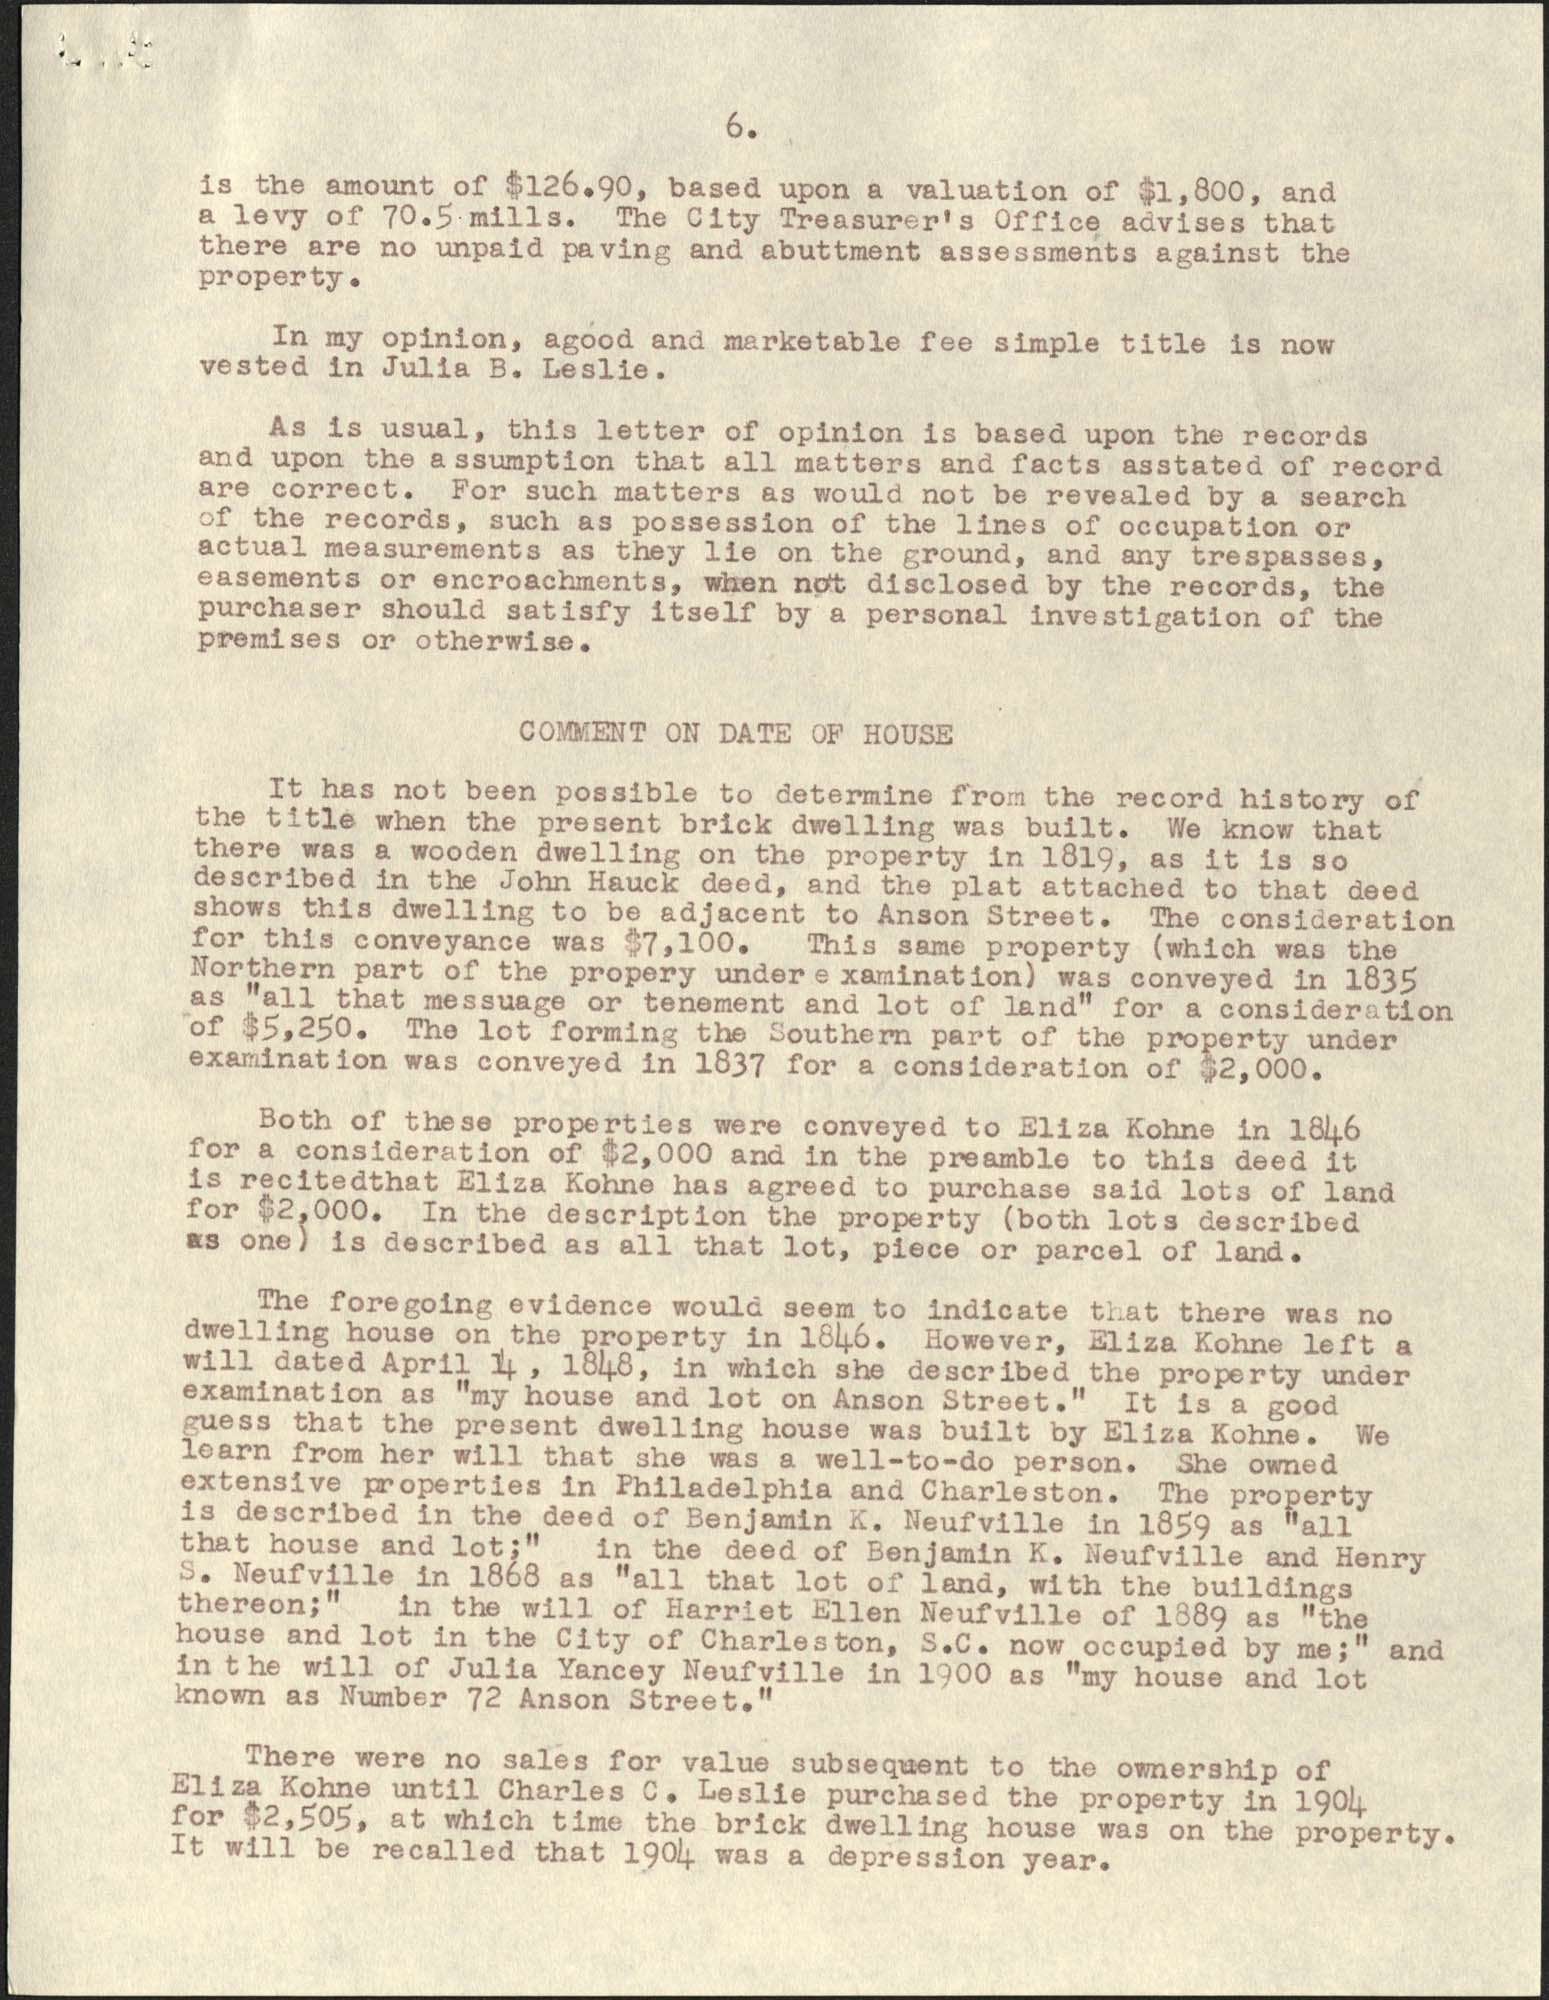 Letter from S. Henry Edmunds to Ben Scott Whaley, May 6, 1959, Page 6